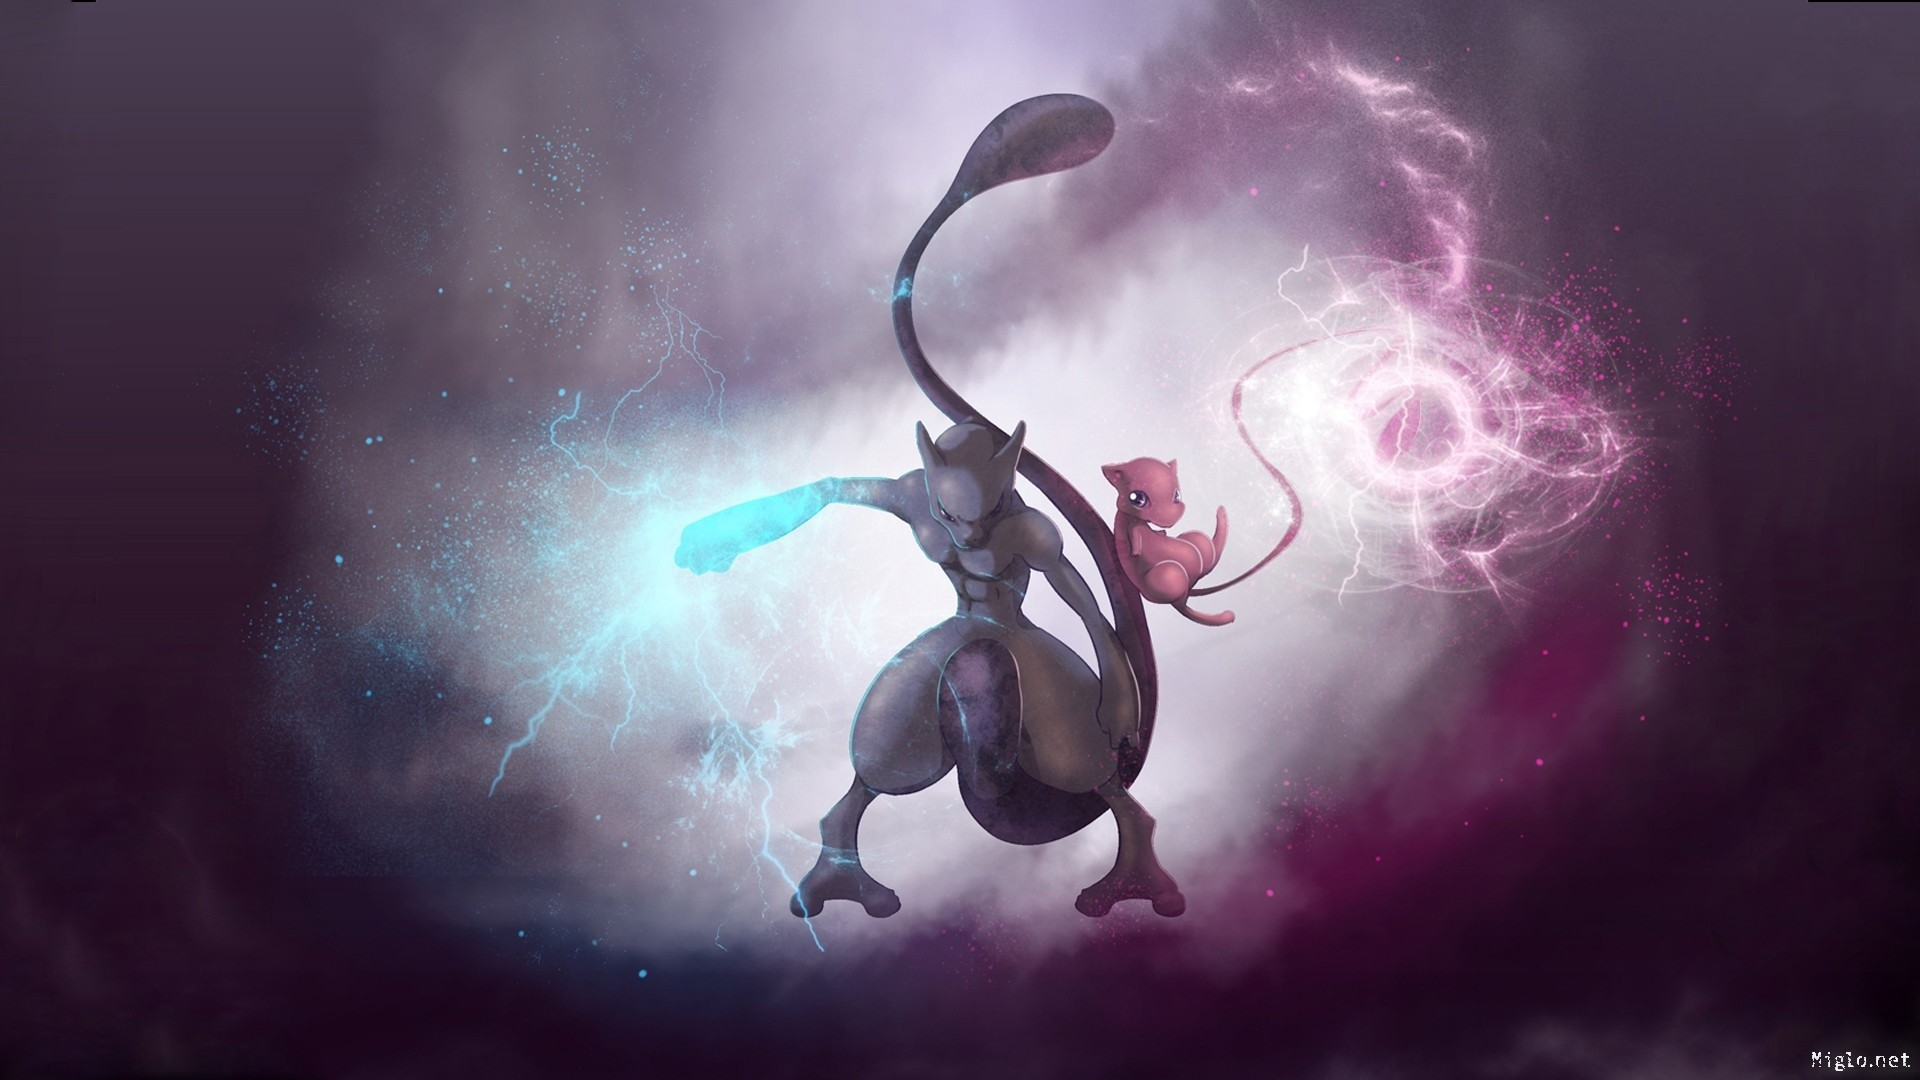 1920x1080 3804721-anime-mewtwo-wallpapers-high-quality-hd-widescreen-